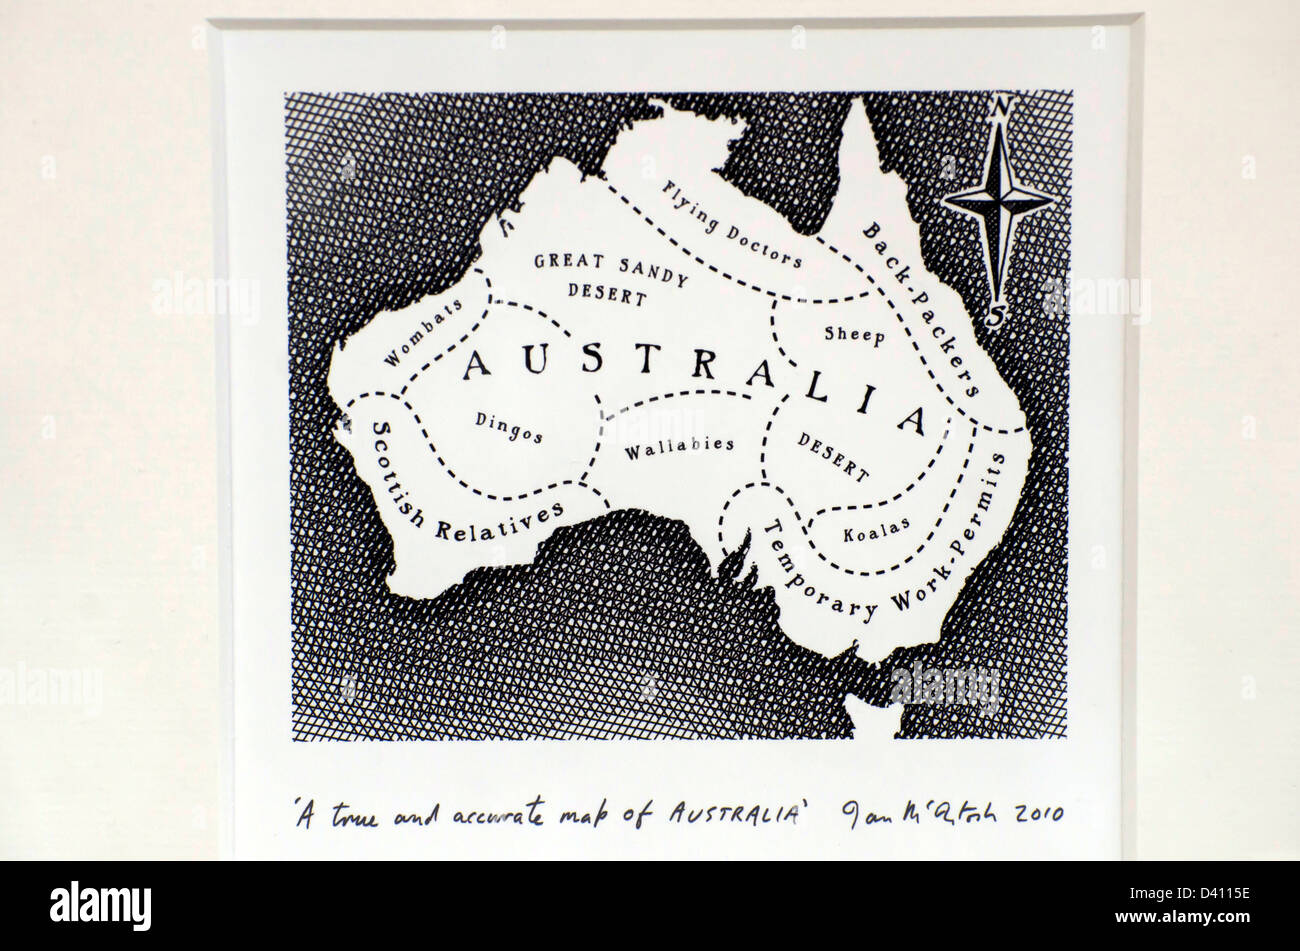 Amusing map of australia from a scottish point of view in a shop amusing map of australia from a scottish point of view in a shop in edinburgh scotland gumiabroncs Choice Image